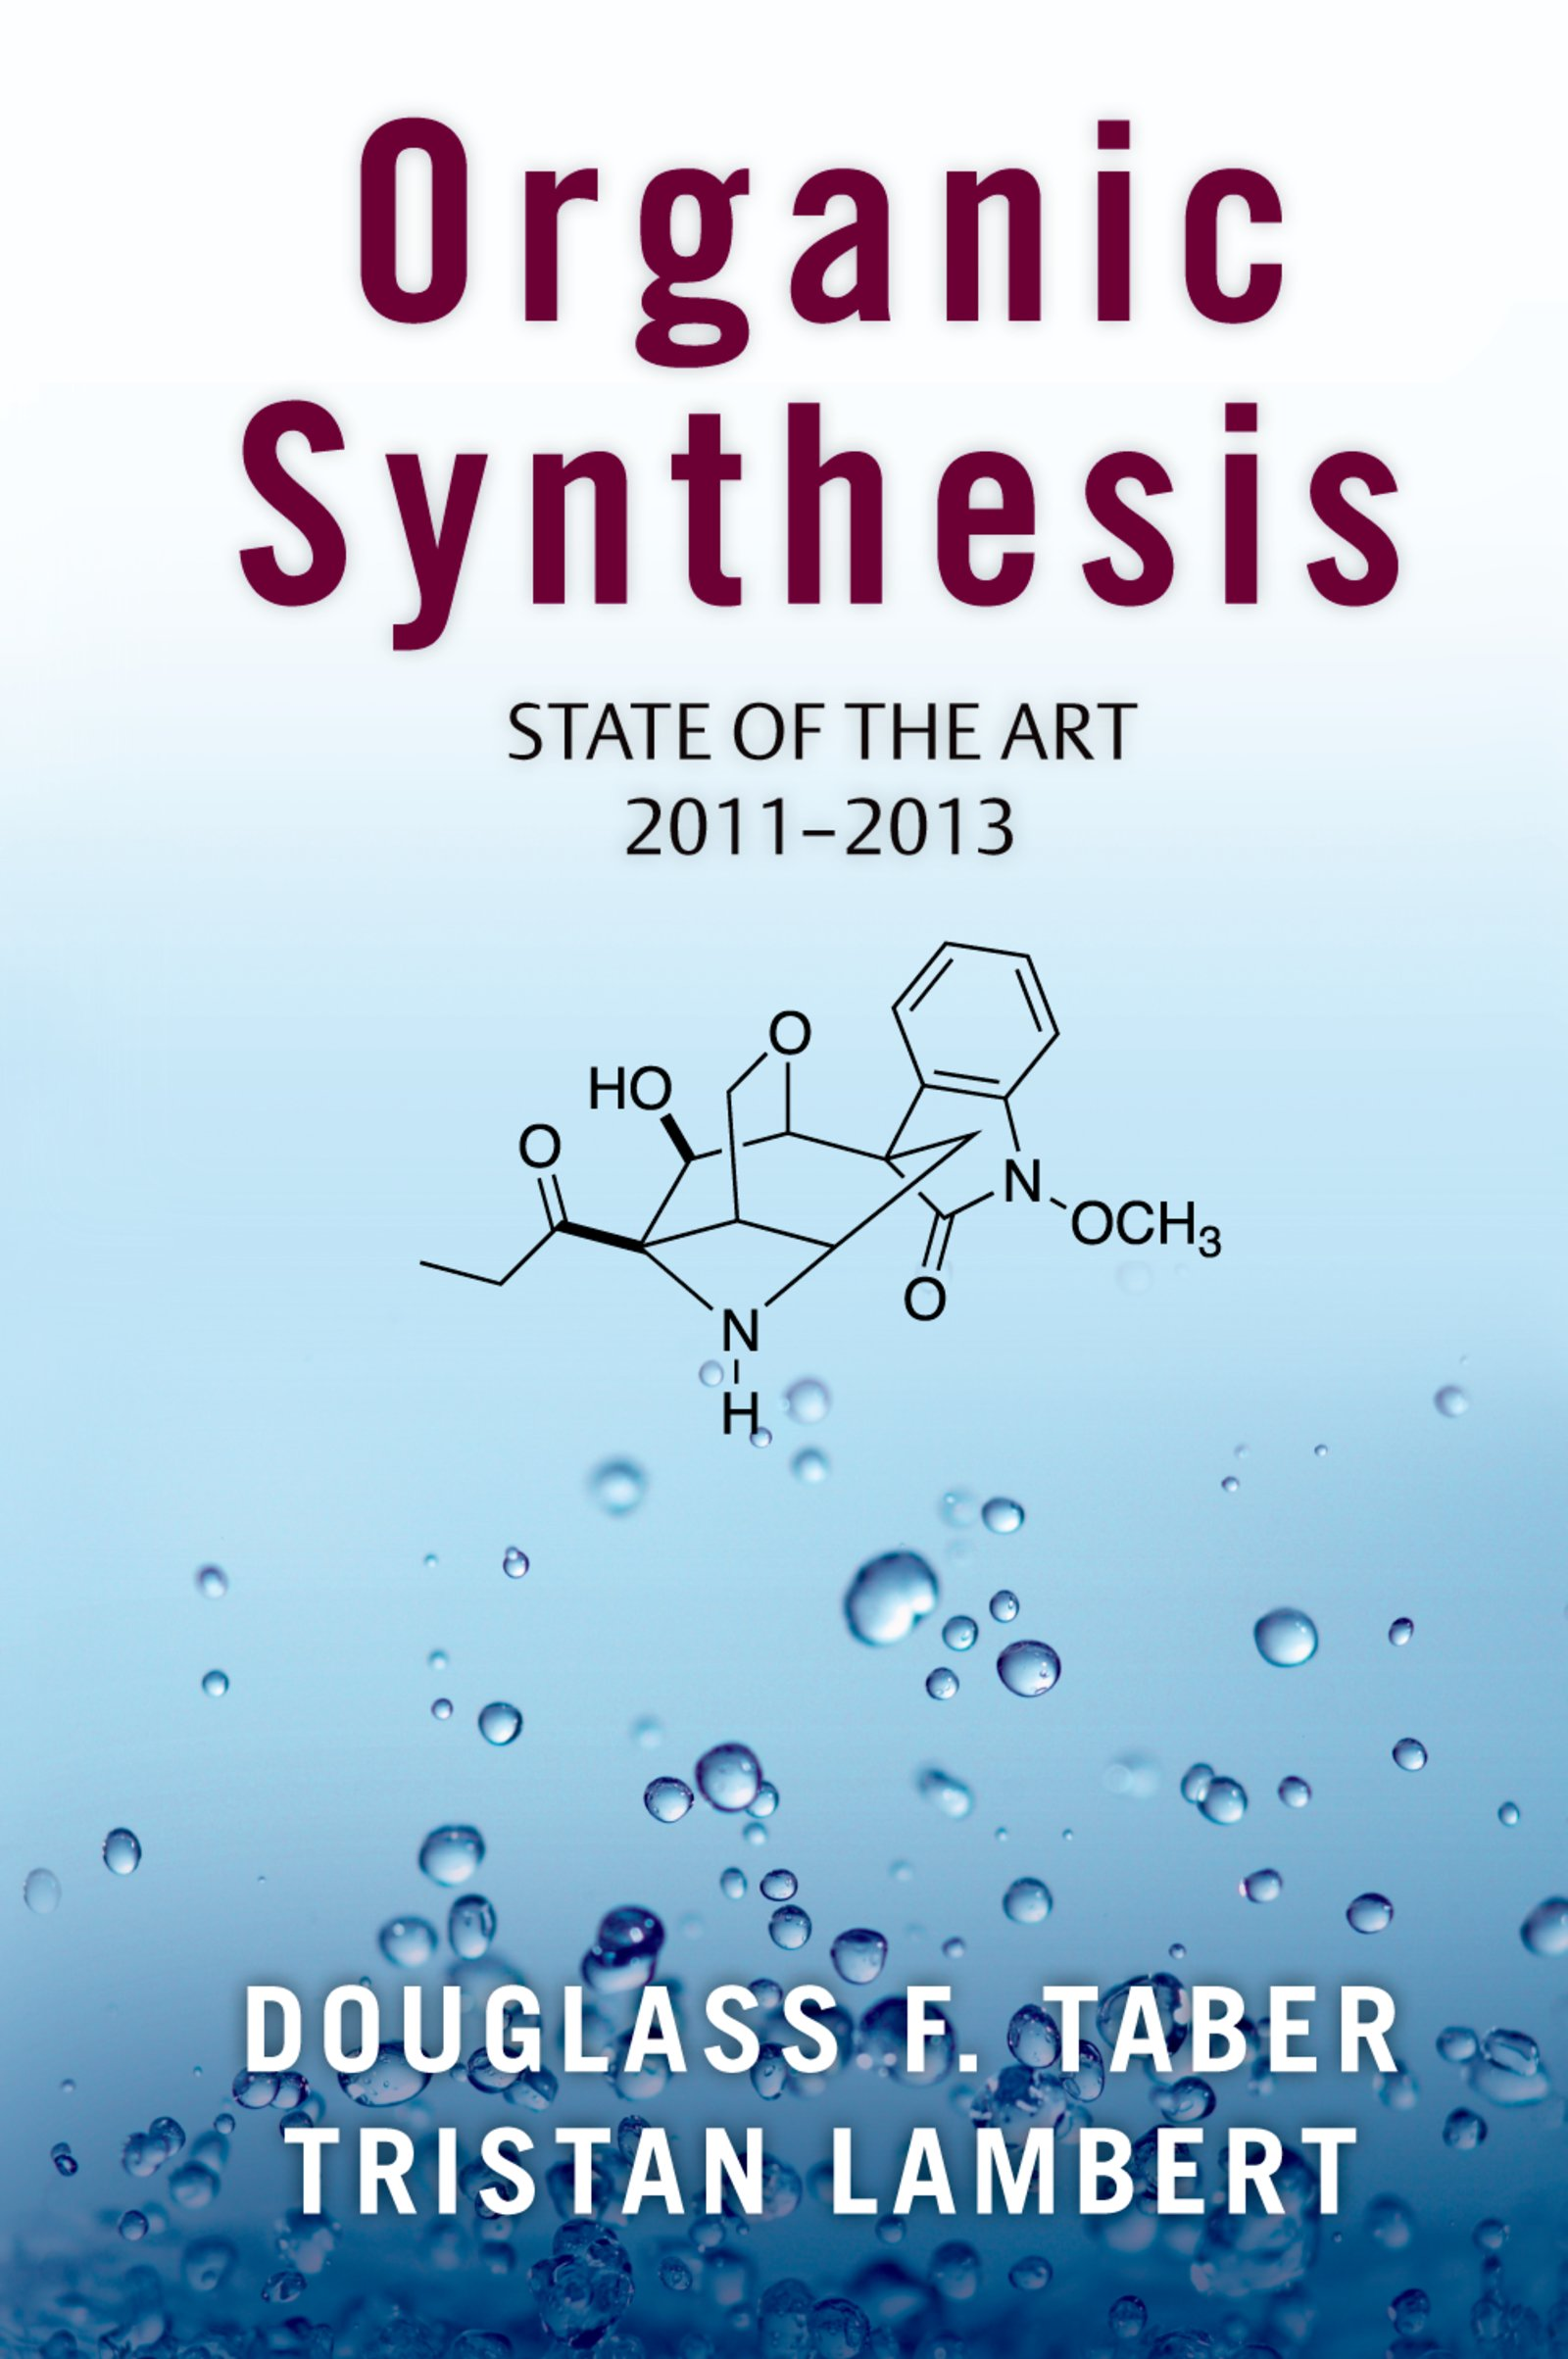 Organic SynthesisState of the Art 2011-2013